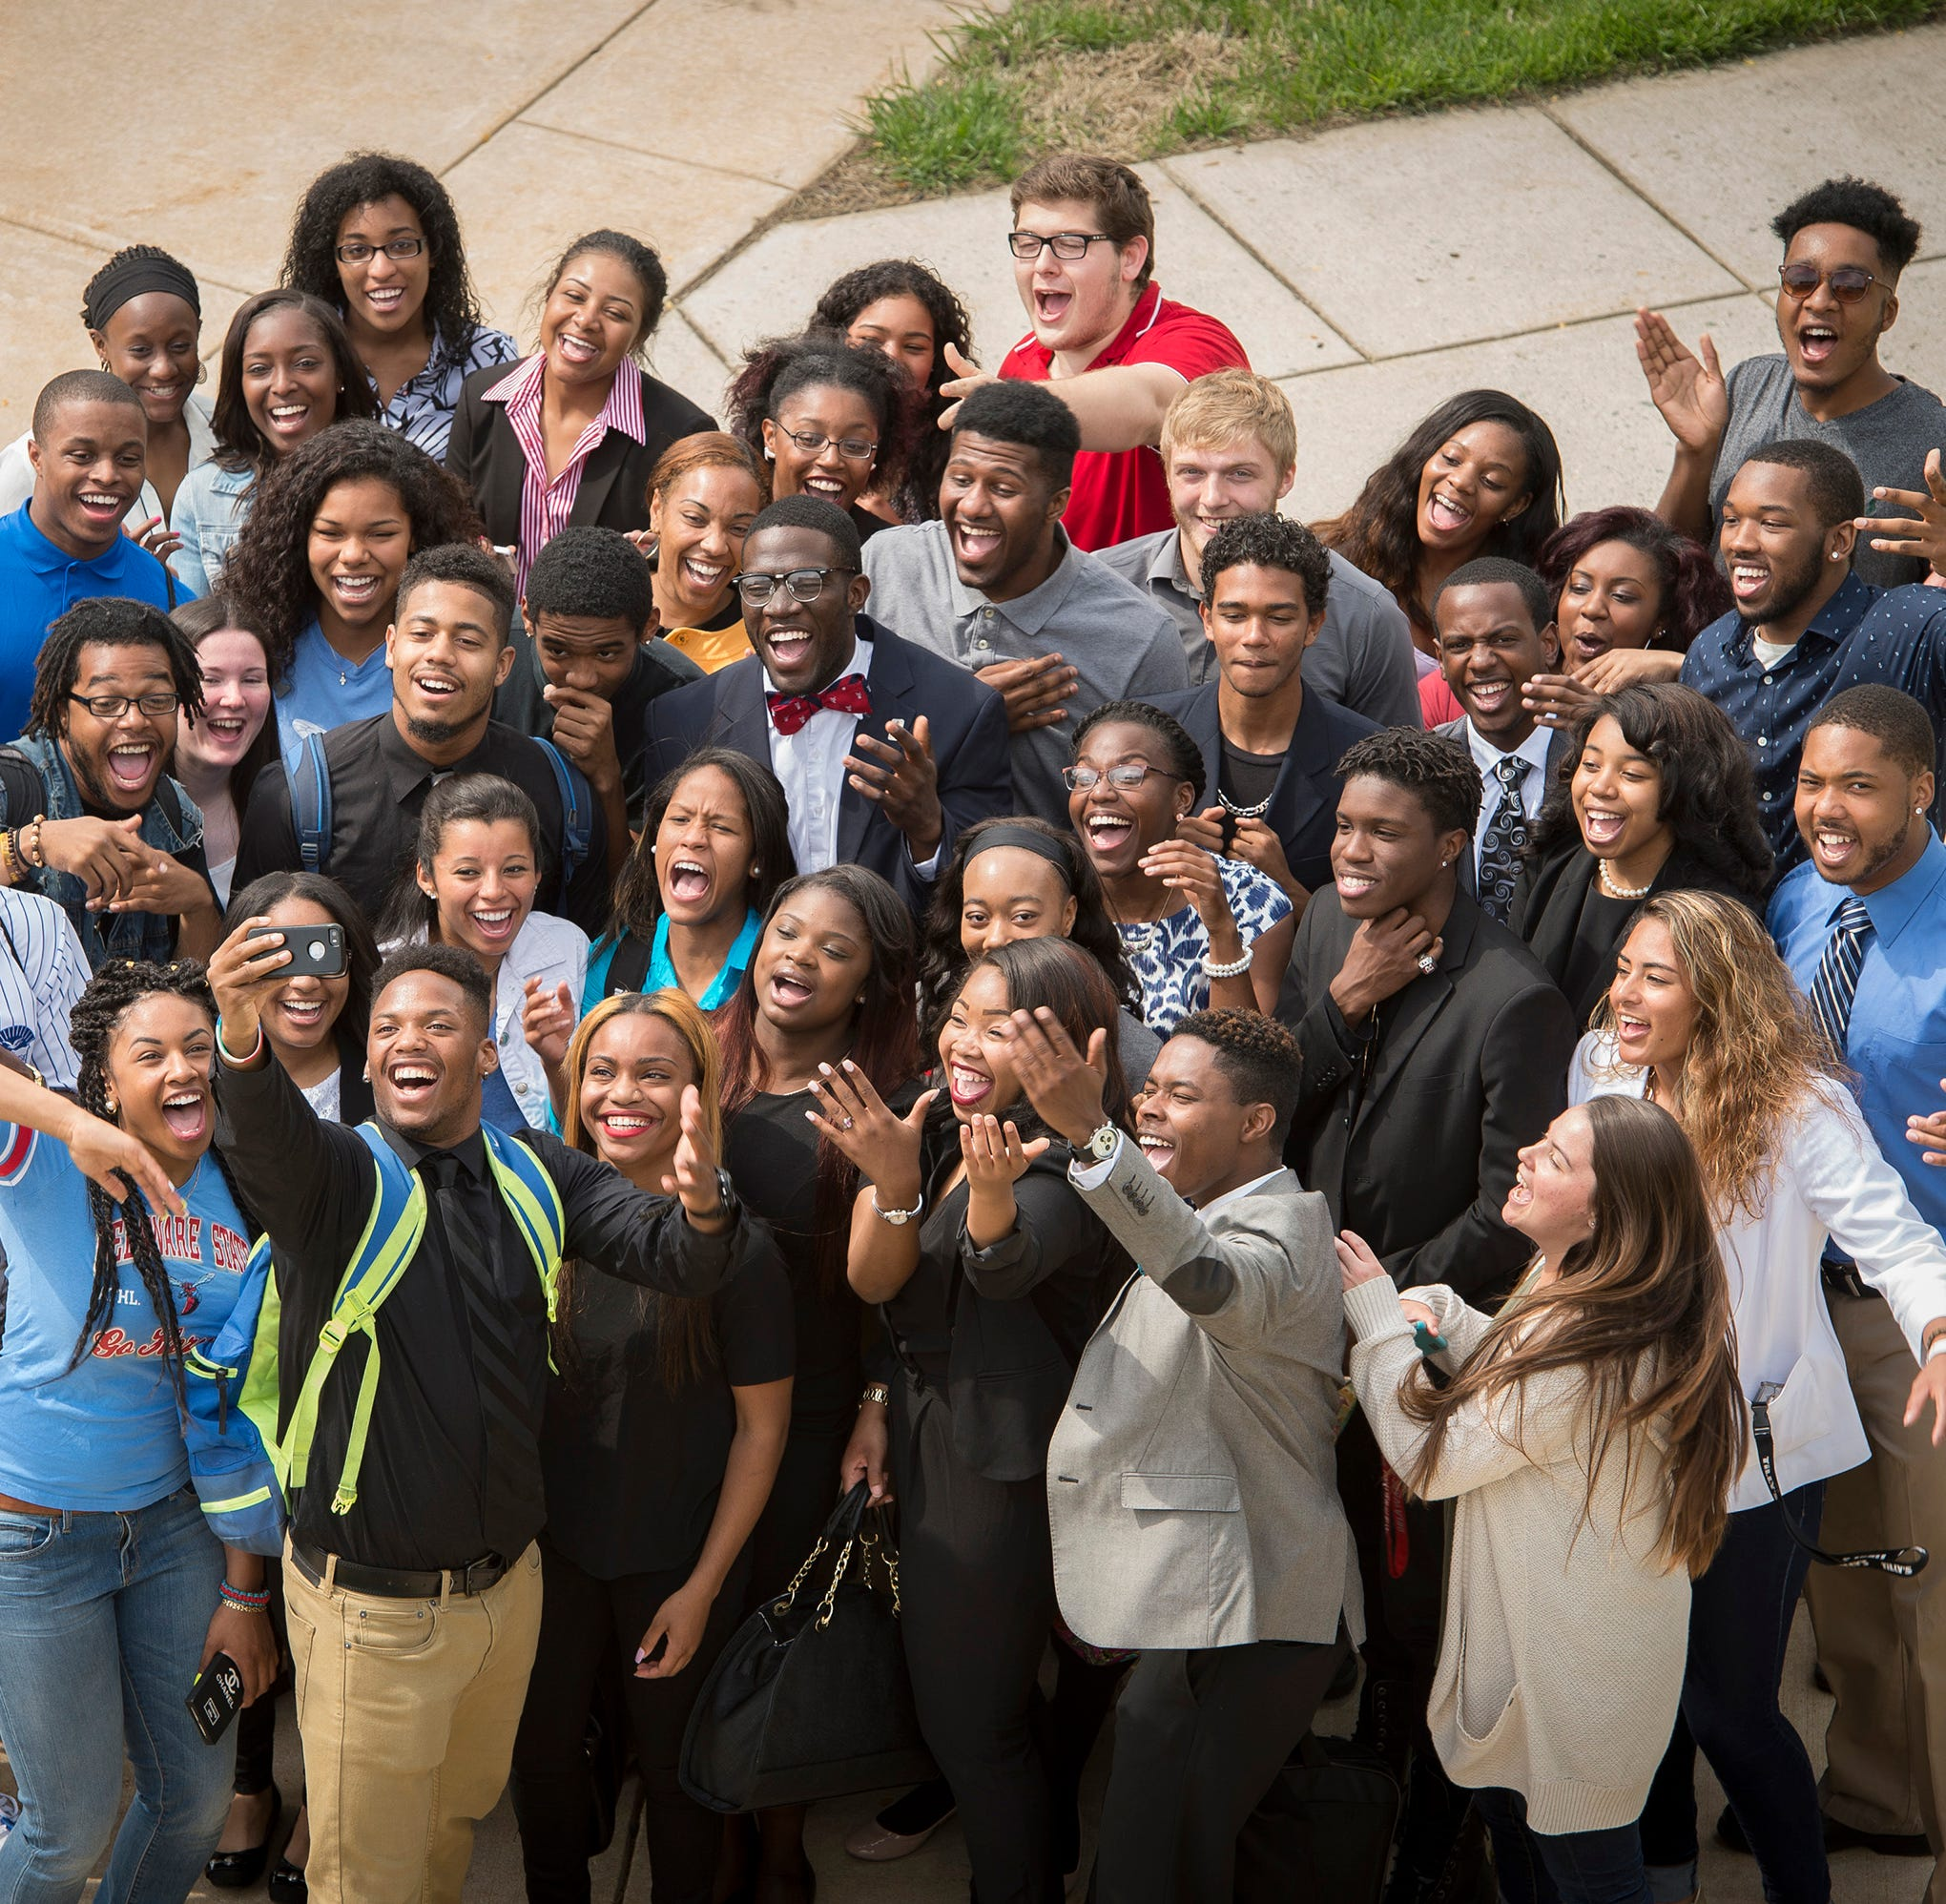 Delaware State University's next 25 years is a vision of equality